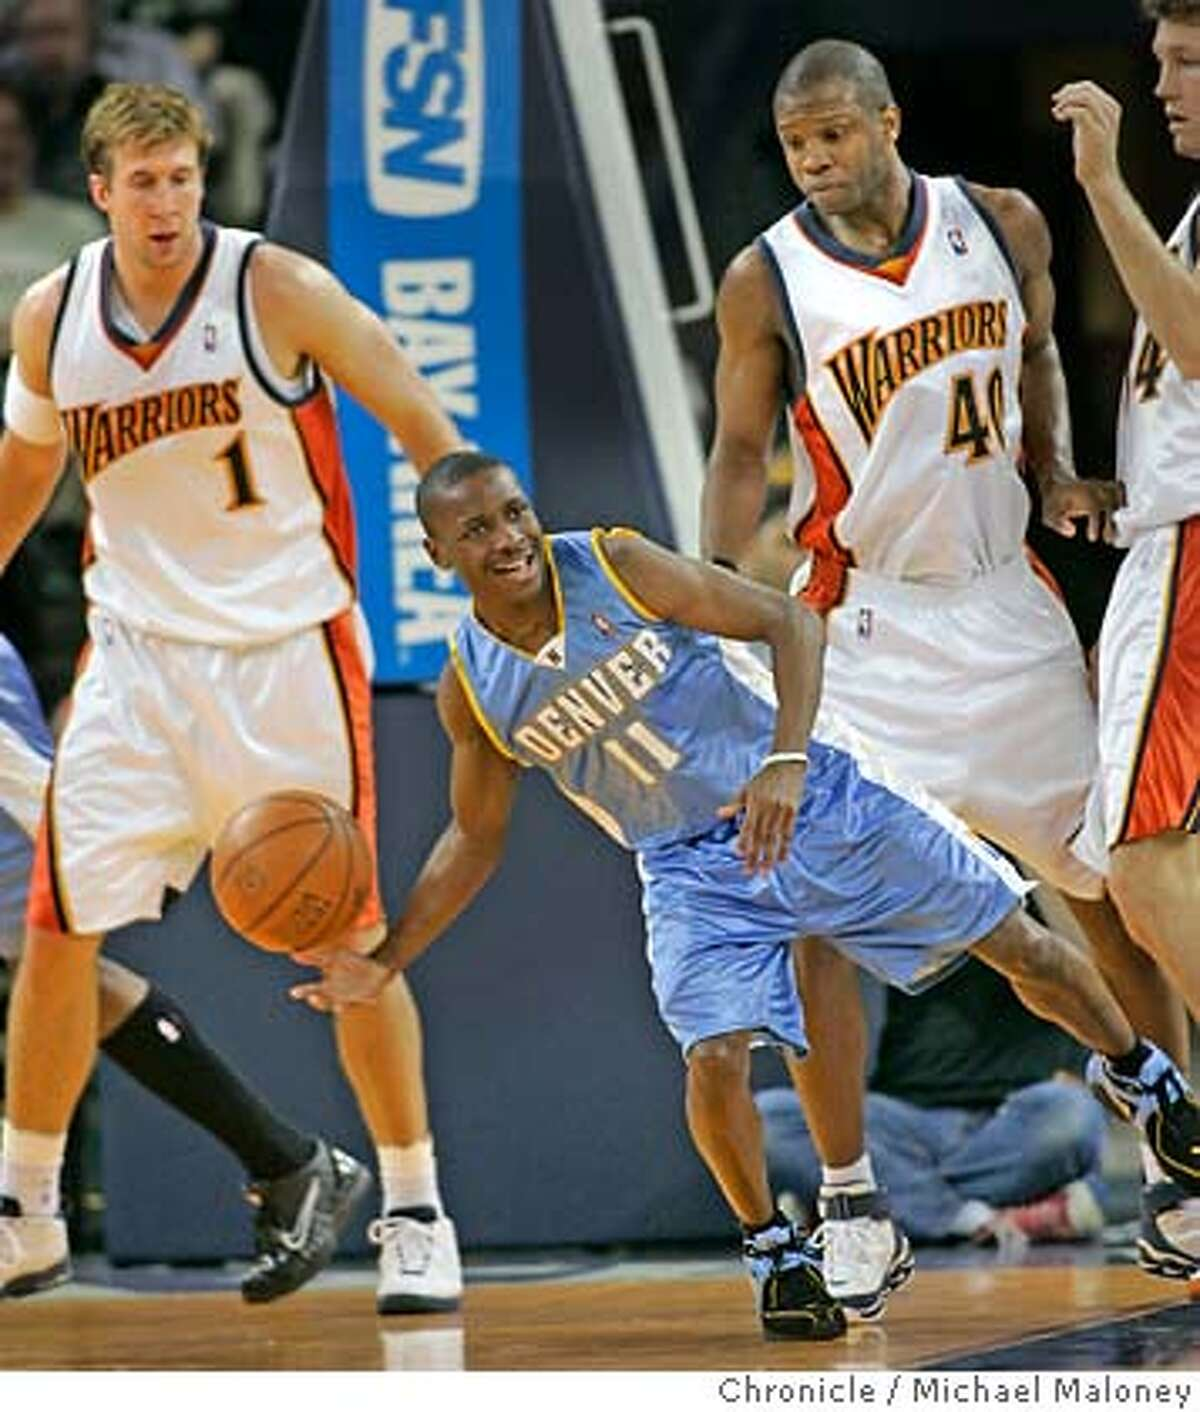 Five foot five Earl Boykins of Denver looks for someone to pass to as Warriors #1 Troy Murphy, #40 Calbert Cheaney and 34 Mike Dunleavy look on in the 2nd period. Golden State Warriors vs Denver Nuggets at The Arena in Oakland. Event in Oakland, CA Photo by Michael Maloney / The Chronicle